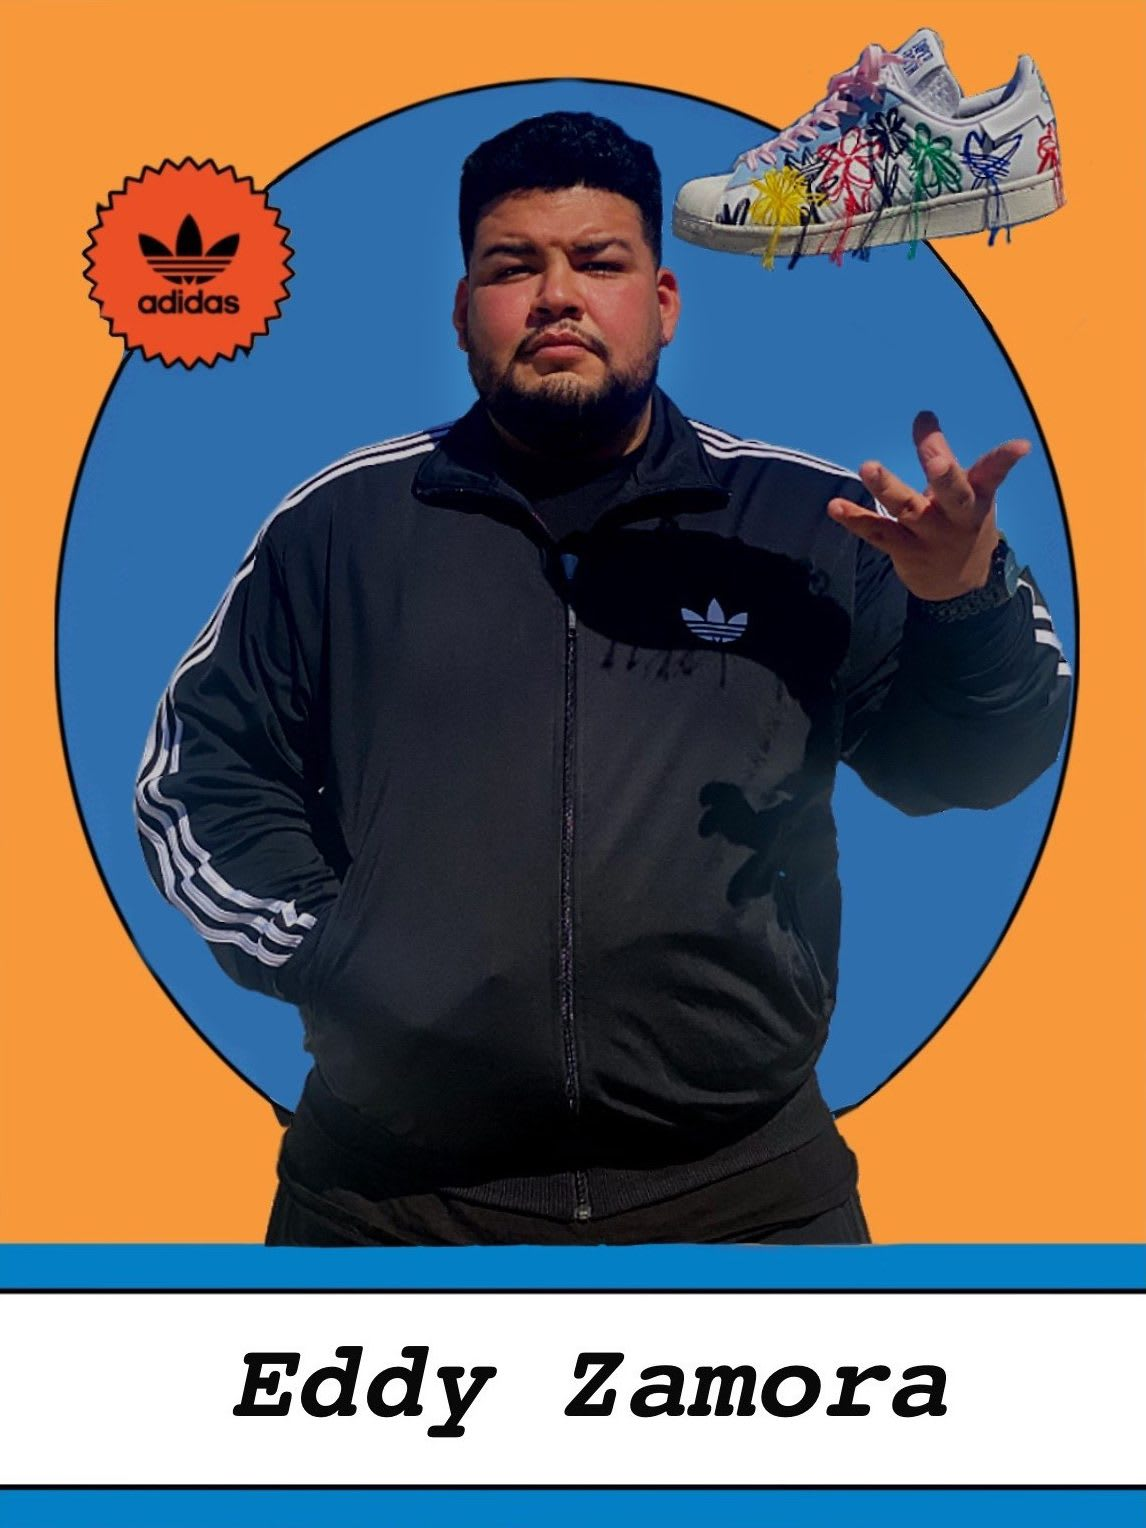 Man throwing a shoe in the air in front of a blue and orange backdrop, Eddy Zamora, adidas, designer, design, creativity